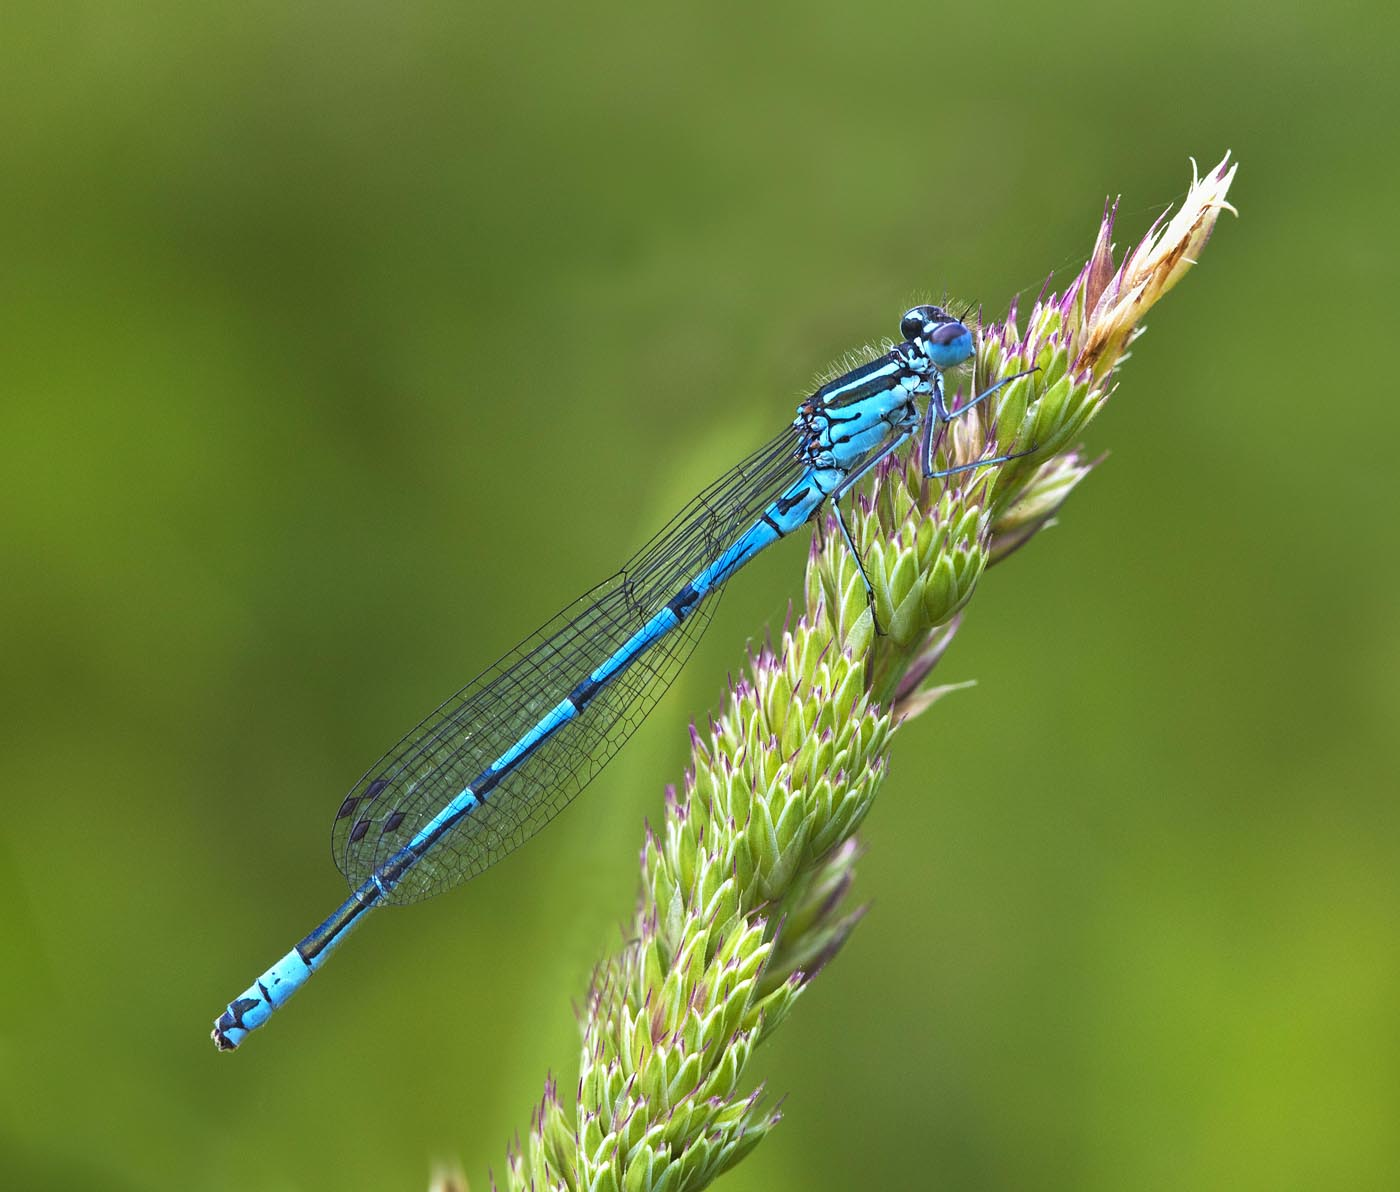 Colour Print - 1st Place: Blue Damselfly by James Anderson